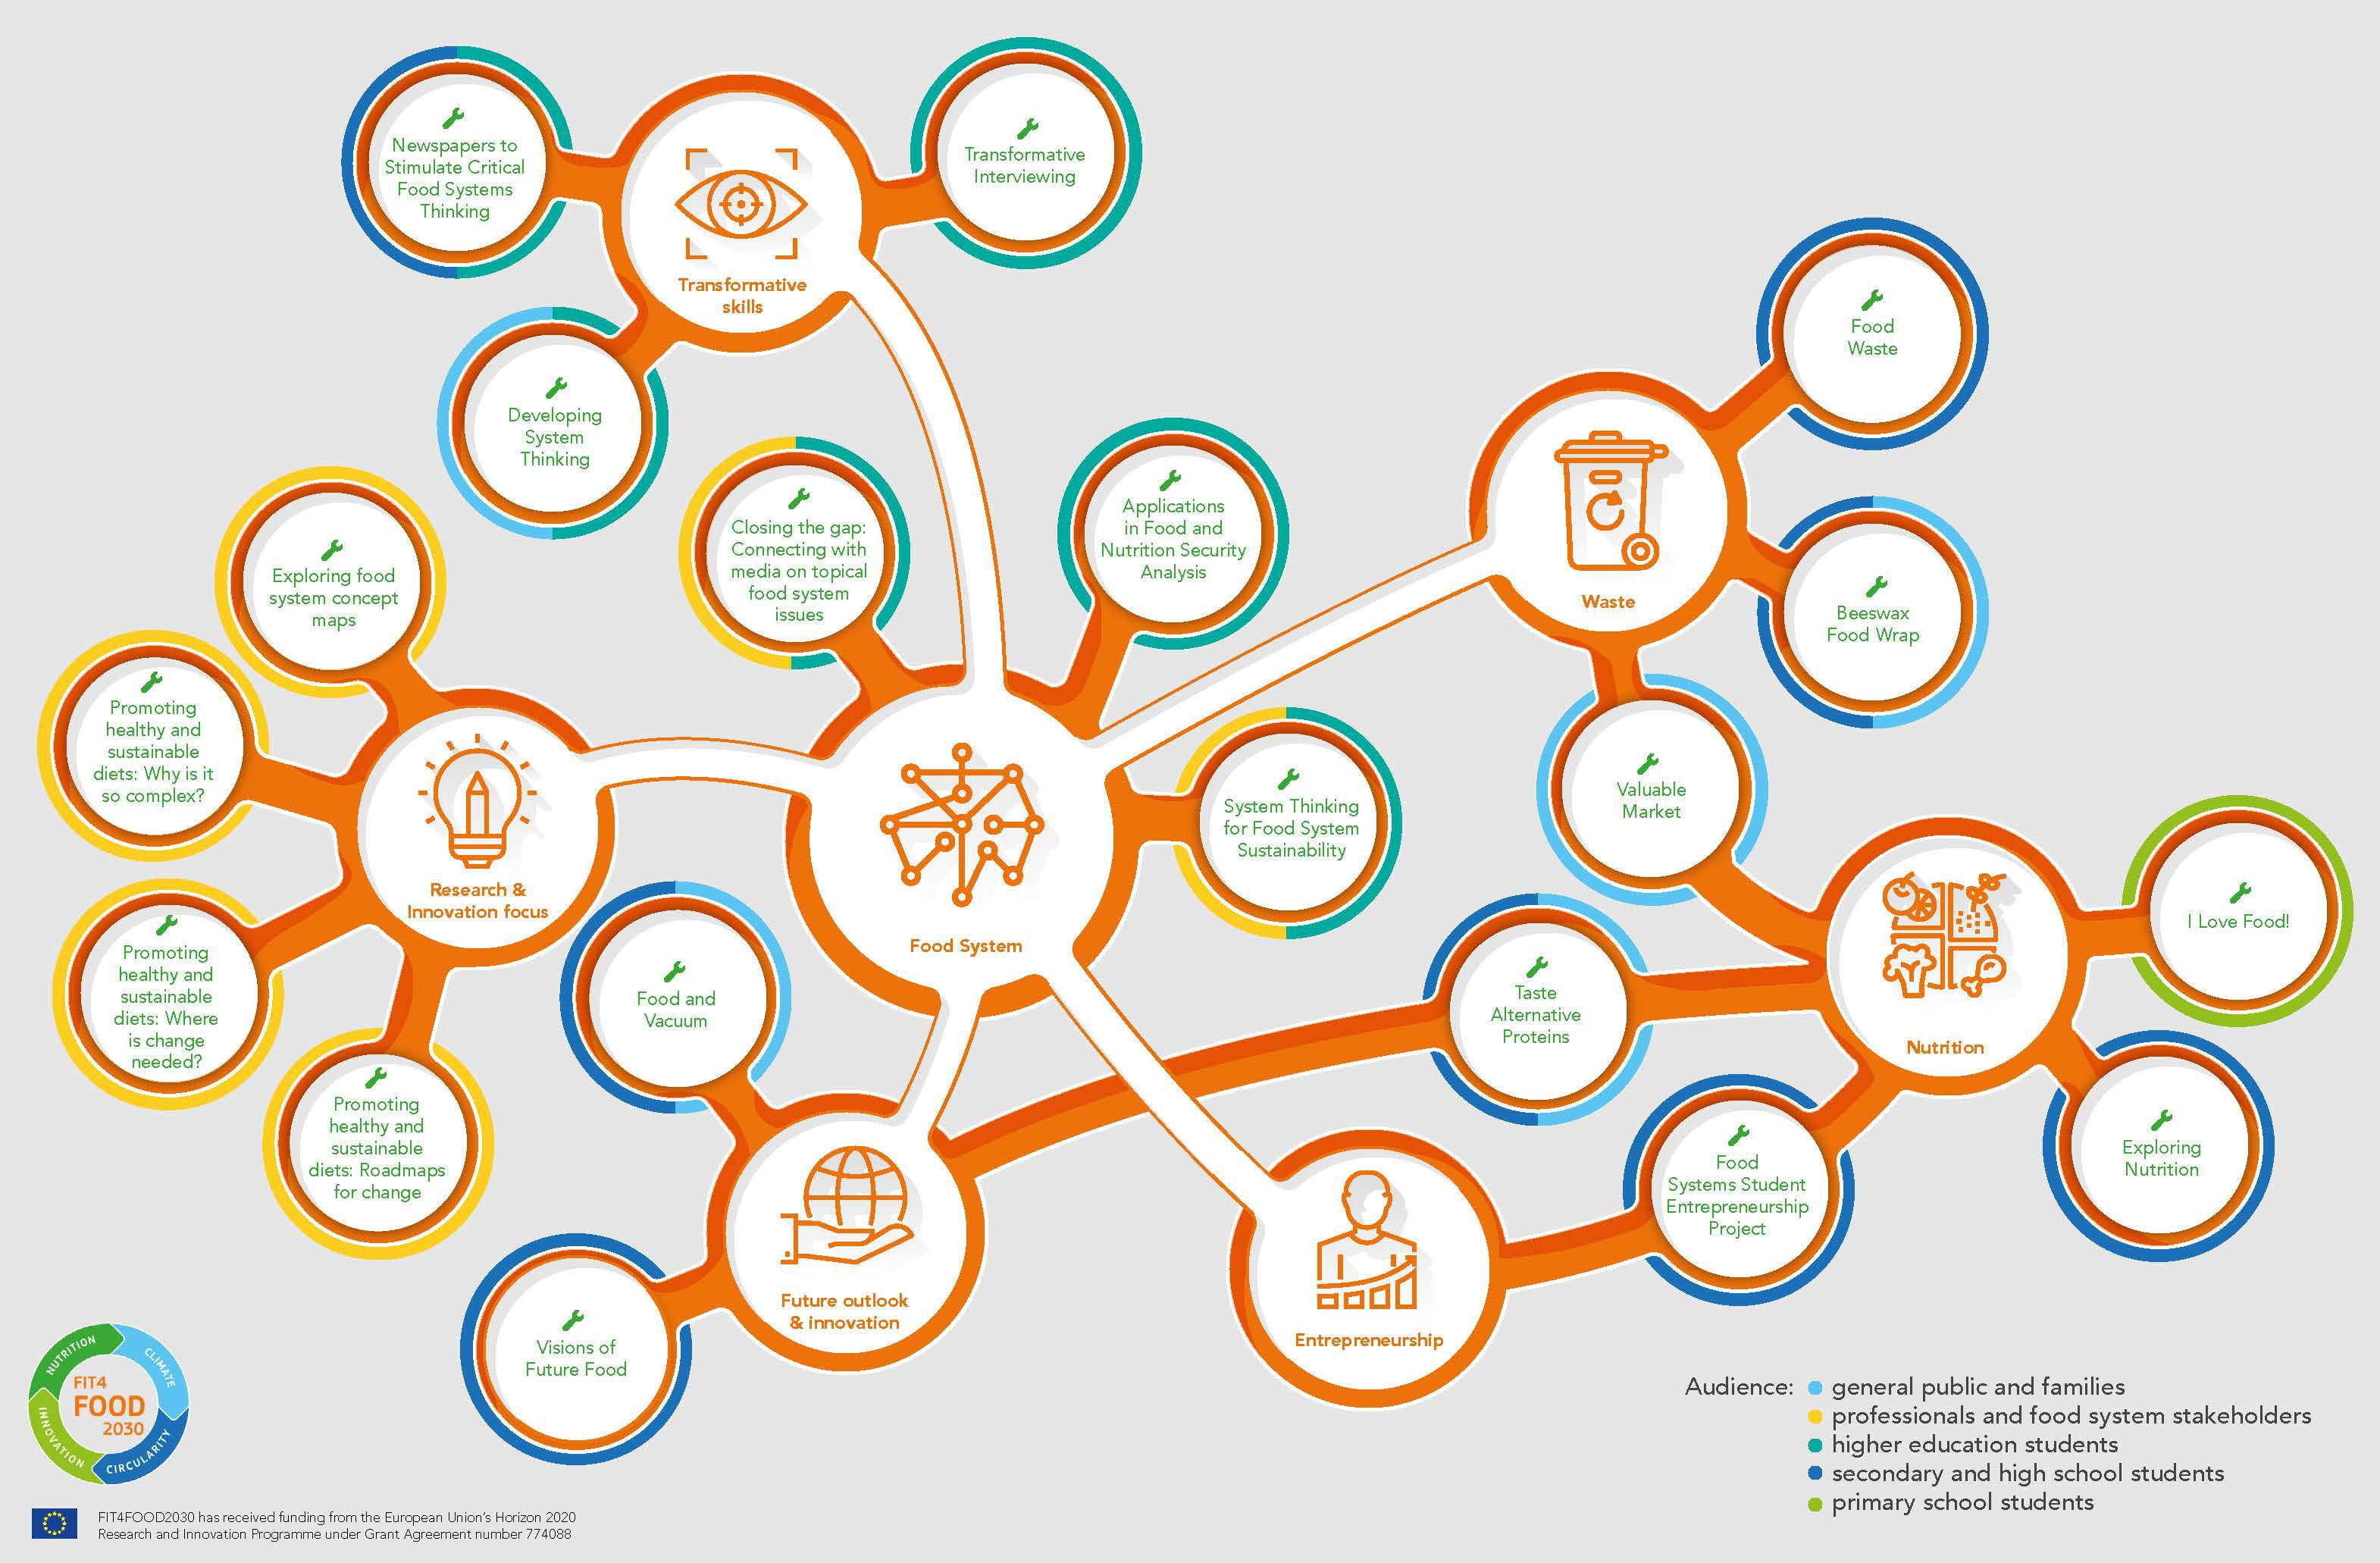 An schematic illustration of the training and educational materials available on the FIT4FOOD2030 Knowledge Hub